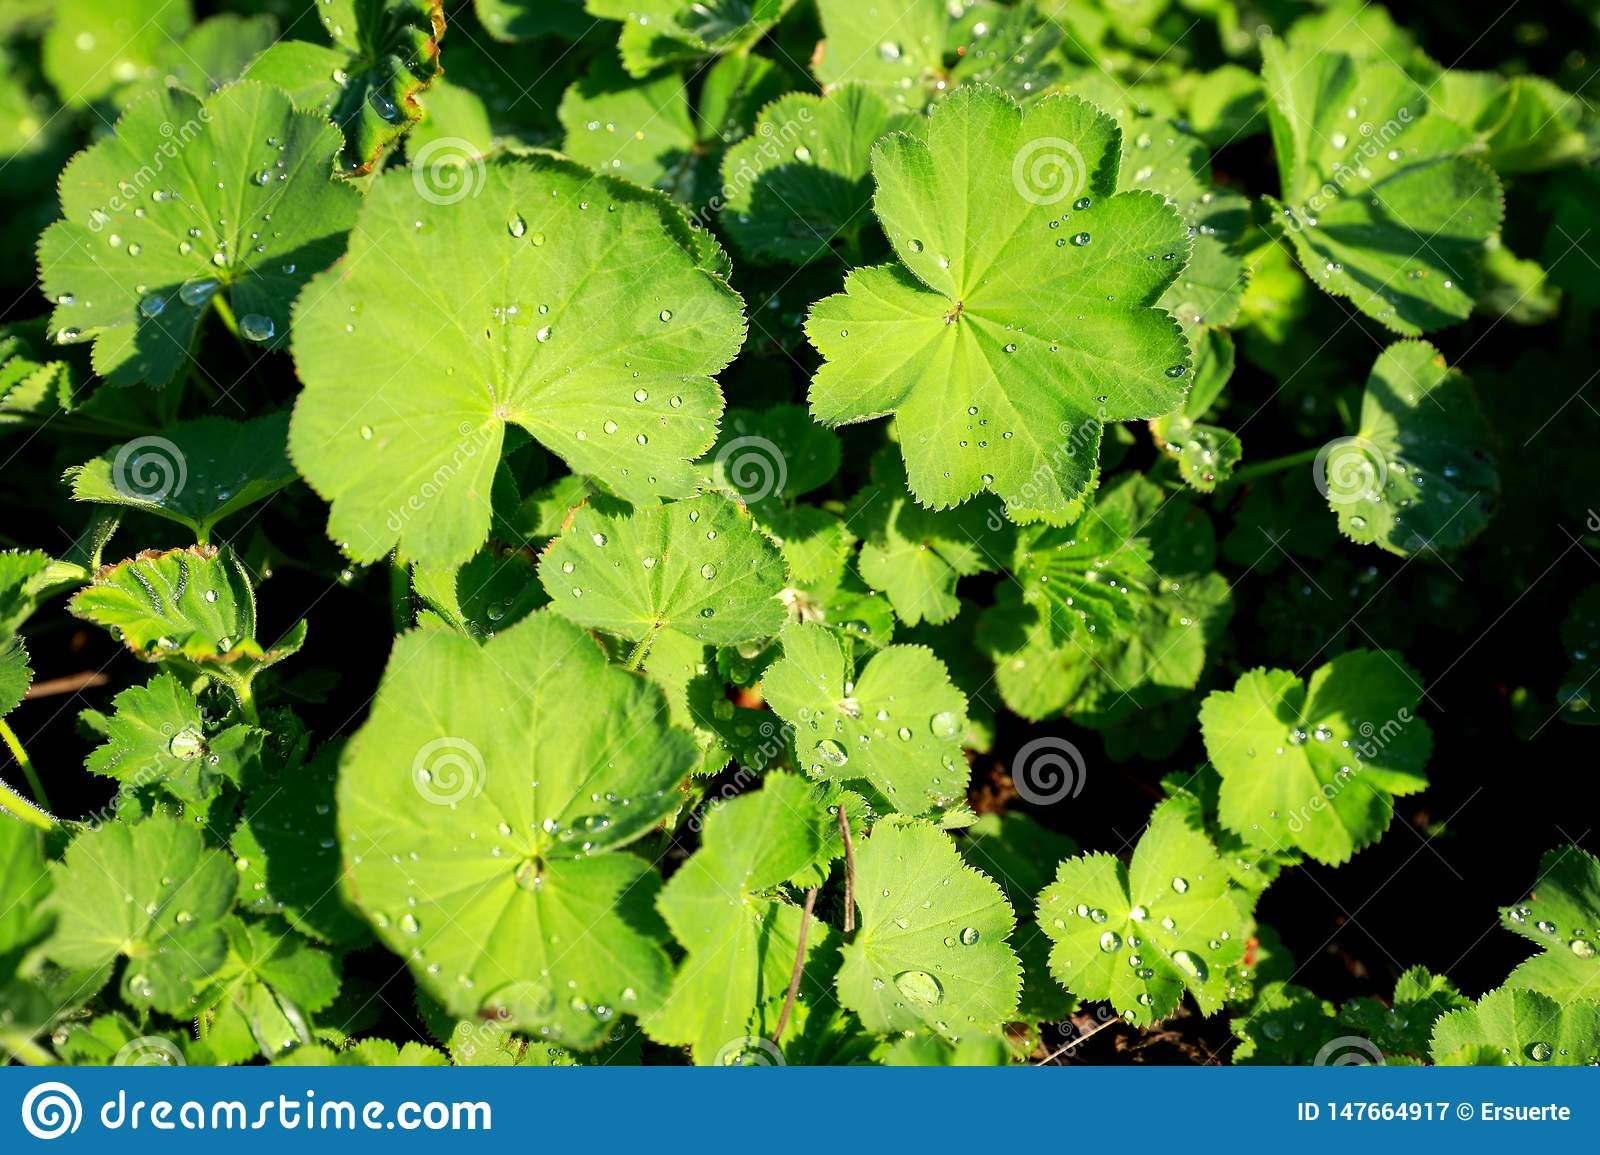 Green leaves of lady's mantle or alchemilla